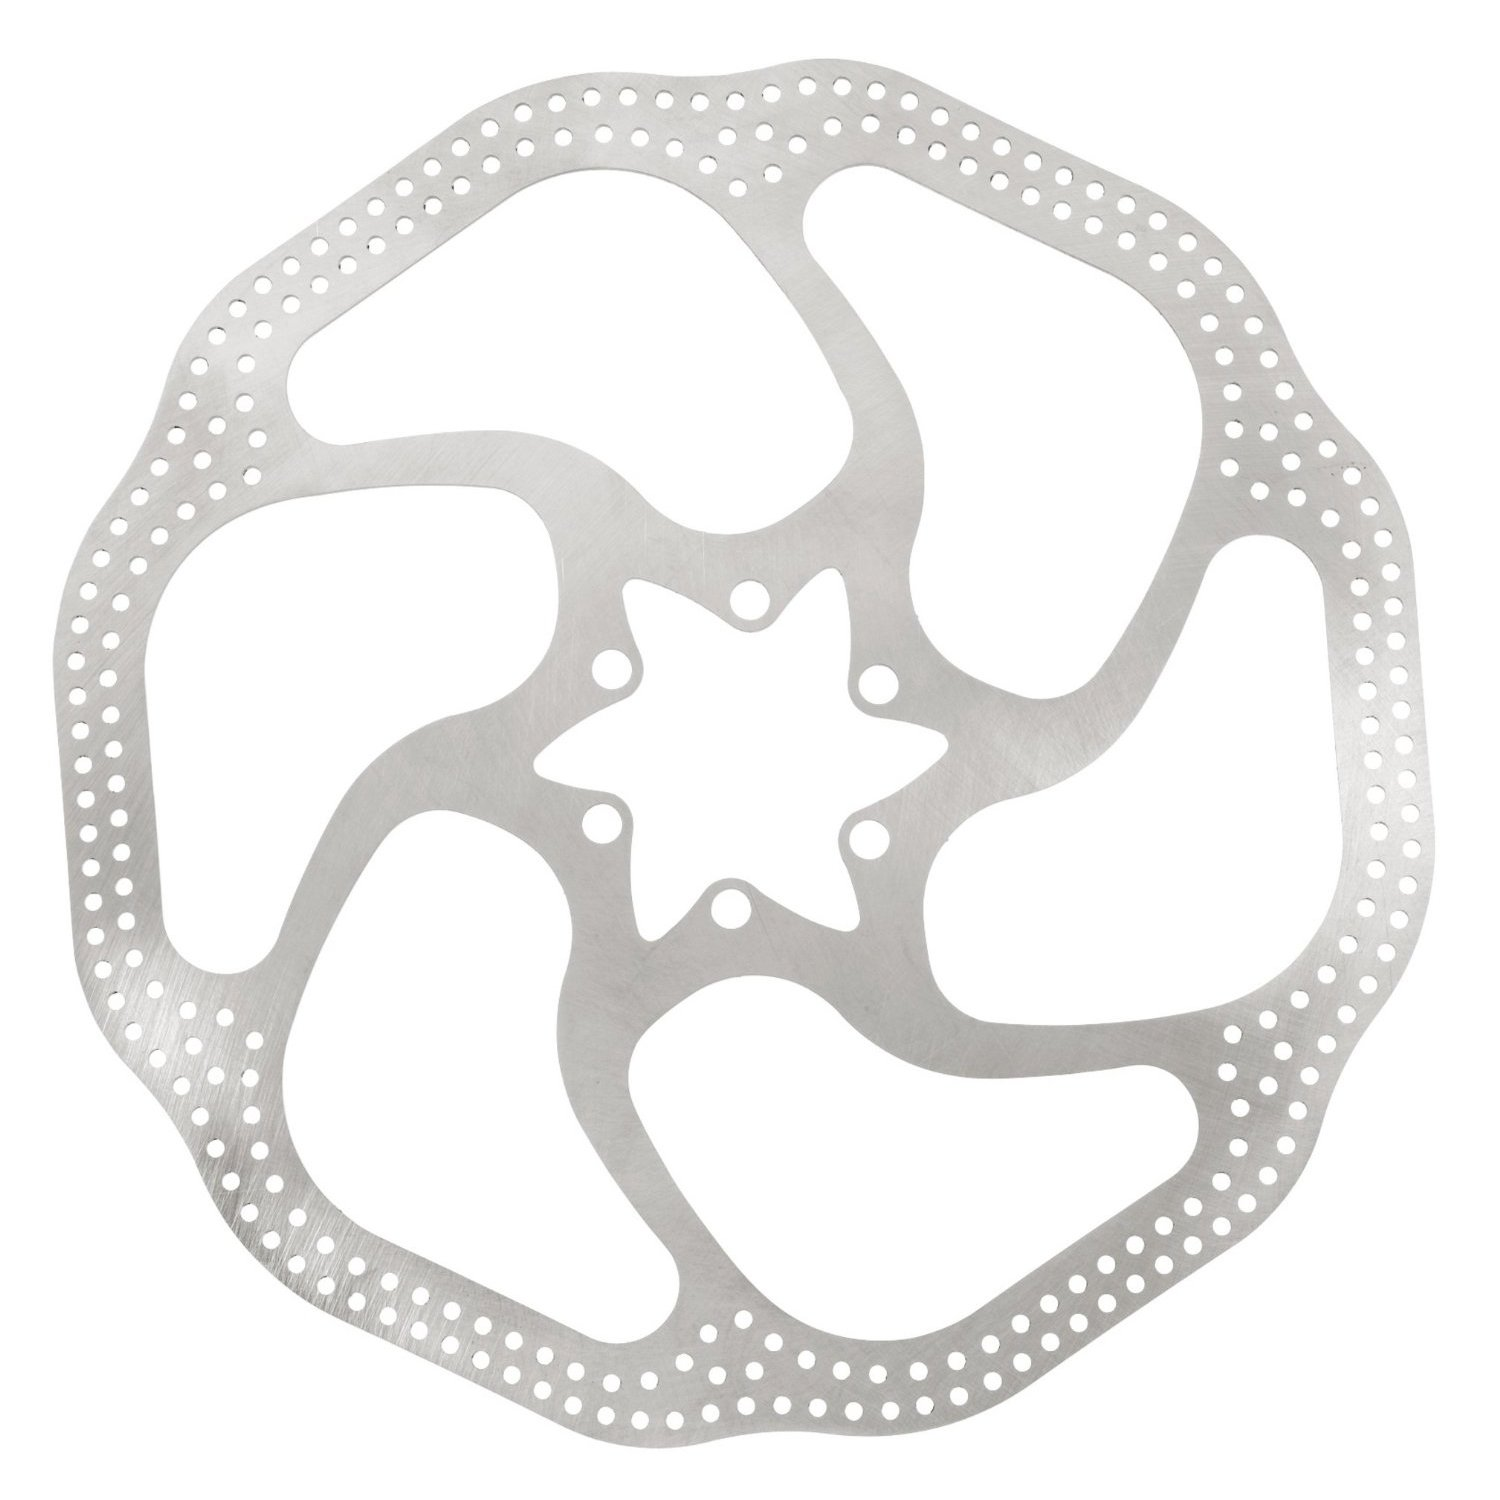 SODIAL (R) Avid HS1 chaleur Faire Cycle Bike 6 'Disc Brake Rotor 160mm 6 Boulons T25 BB5 / BB7